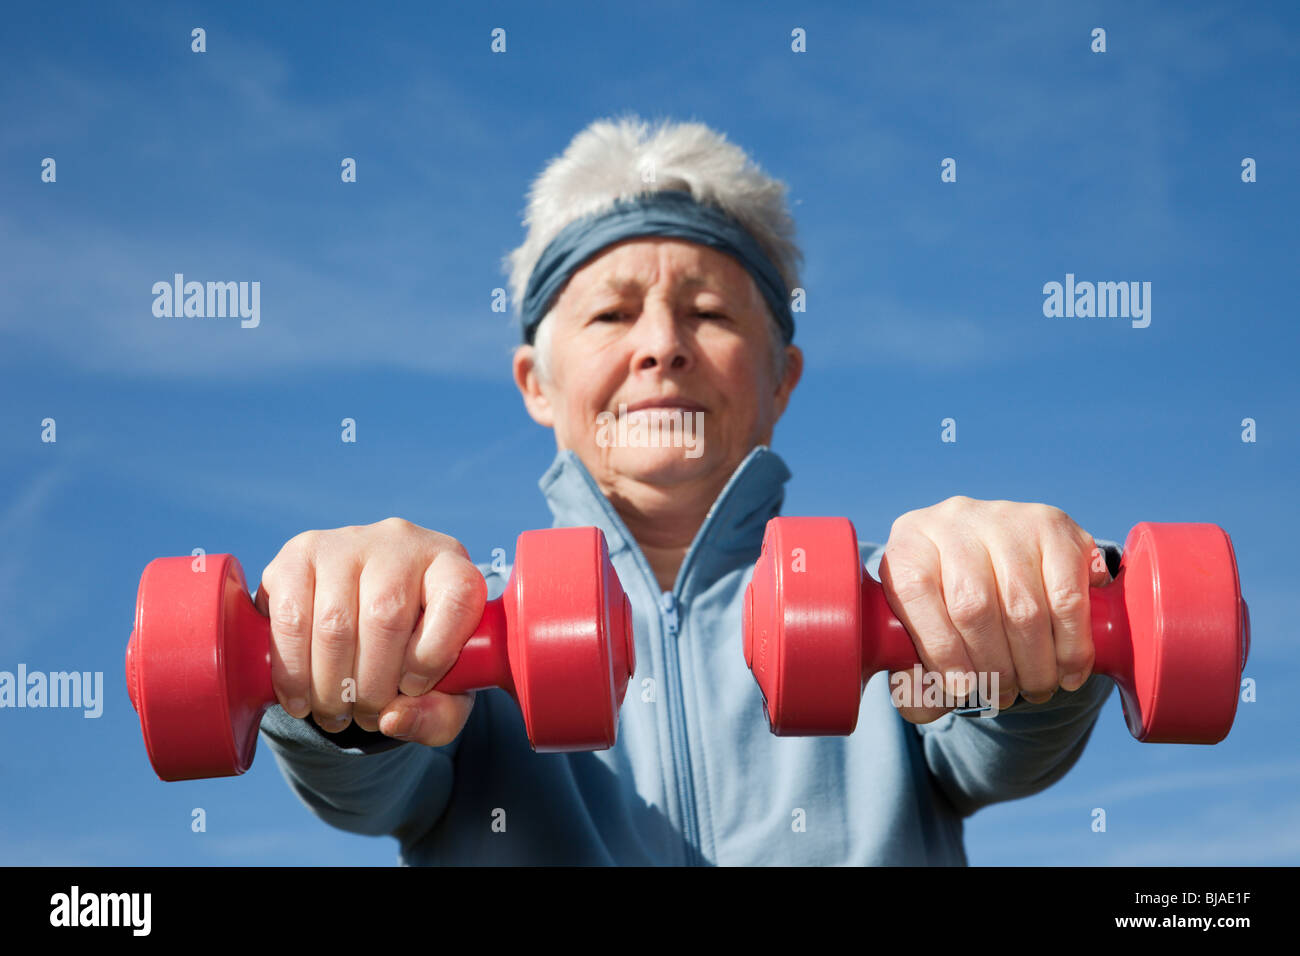 Active senior woman exercising with dumbbell hand weights somewhere outdoors to keep fit. Healthy lifestyle wellness - Stock Image